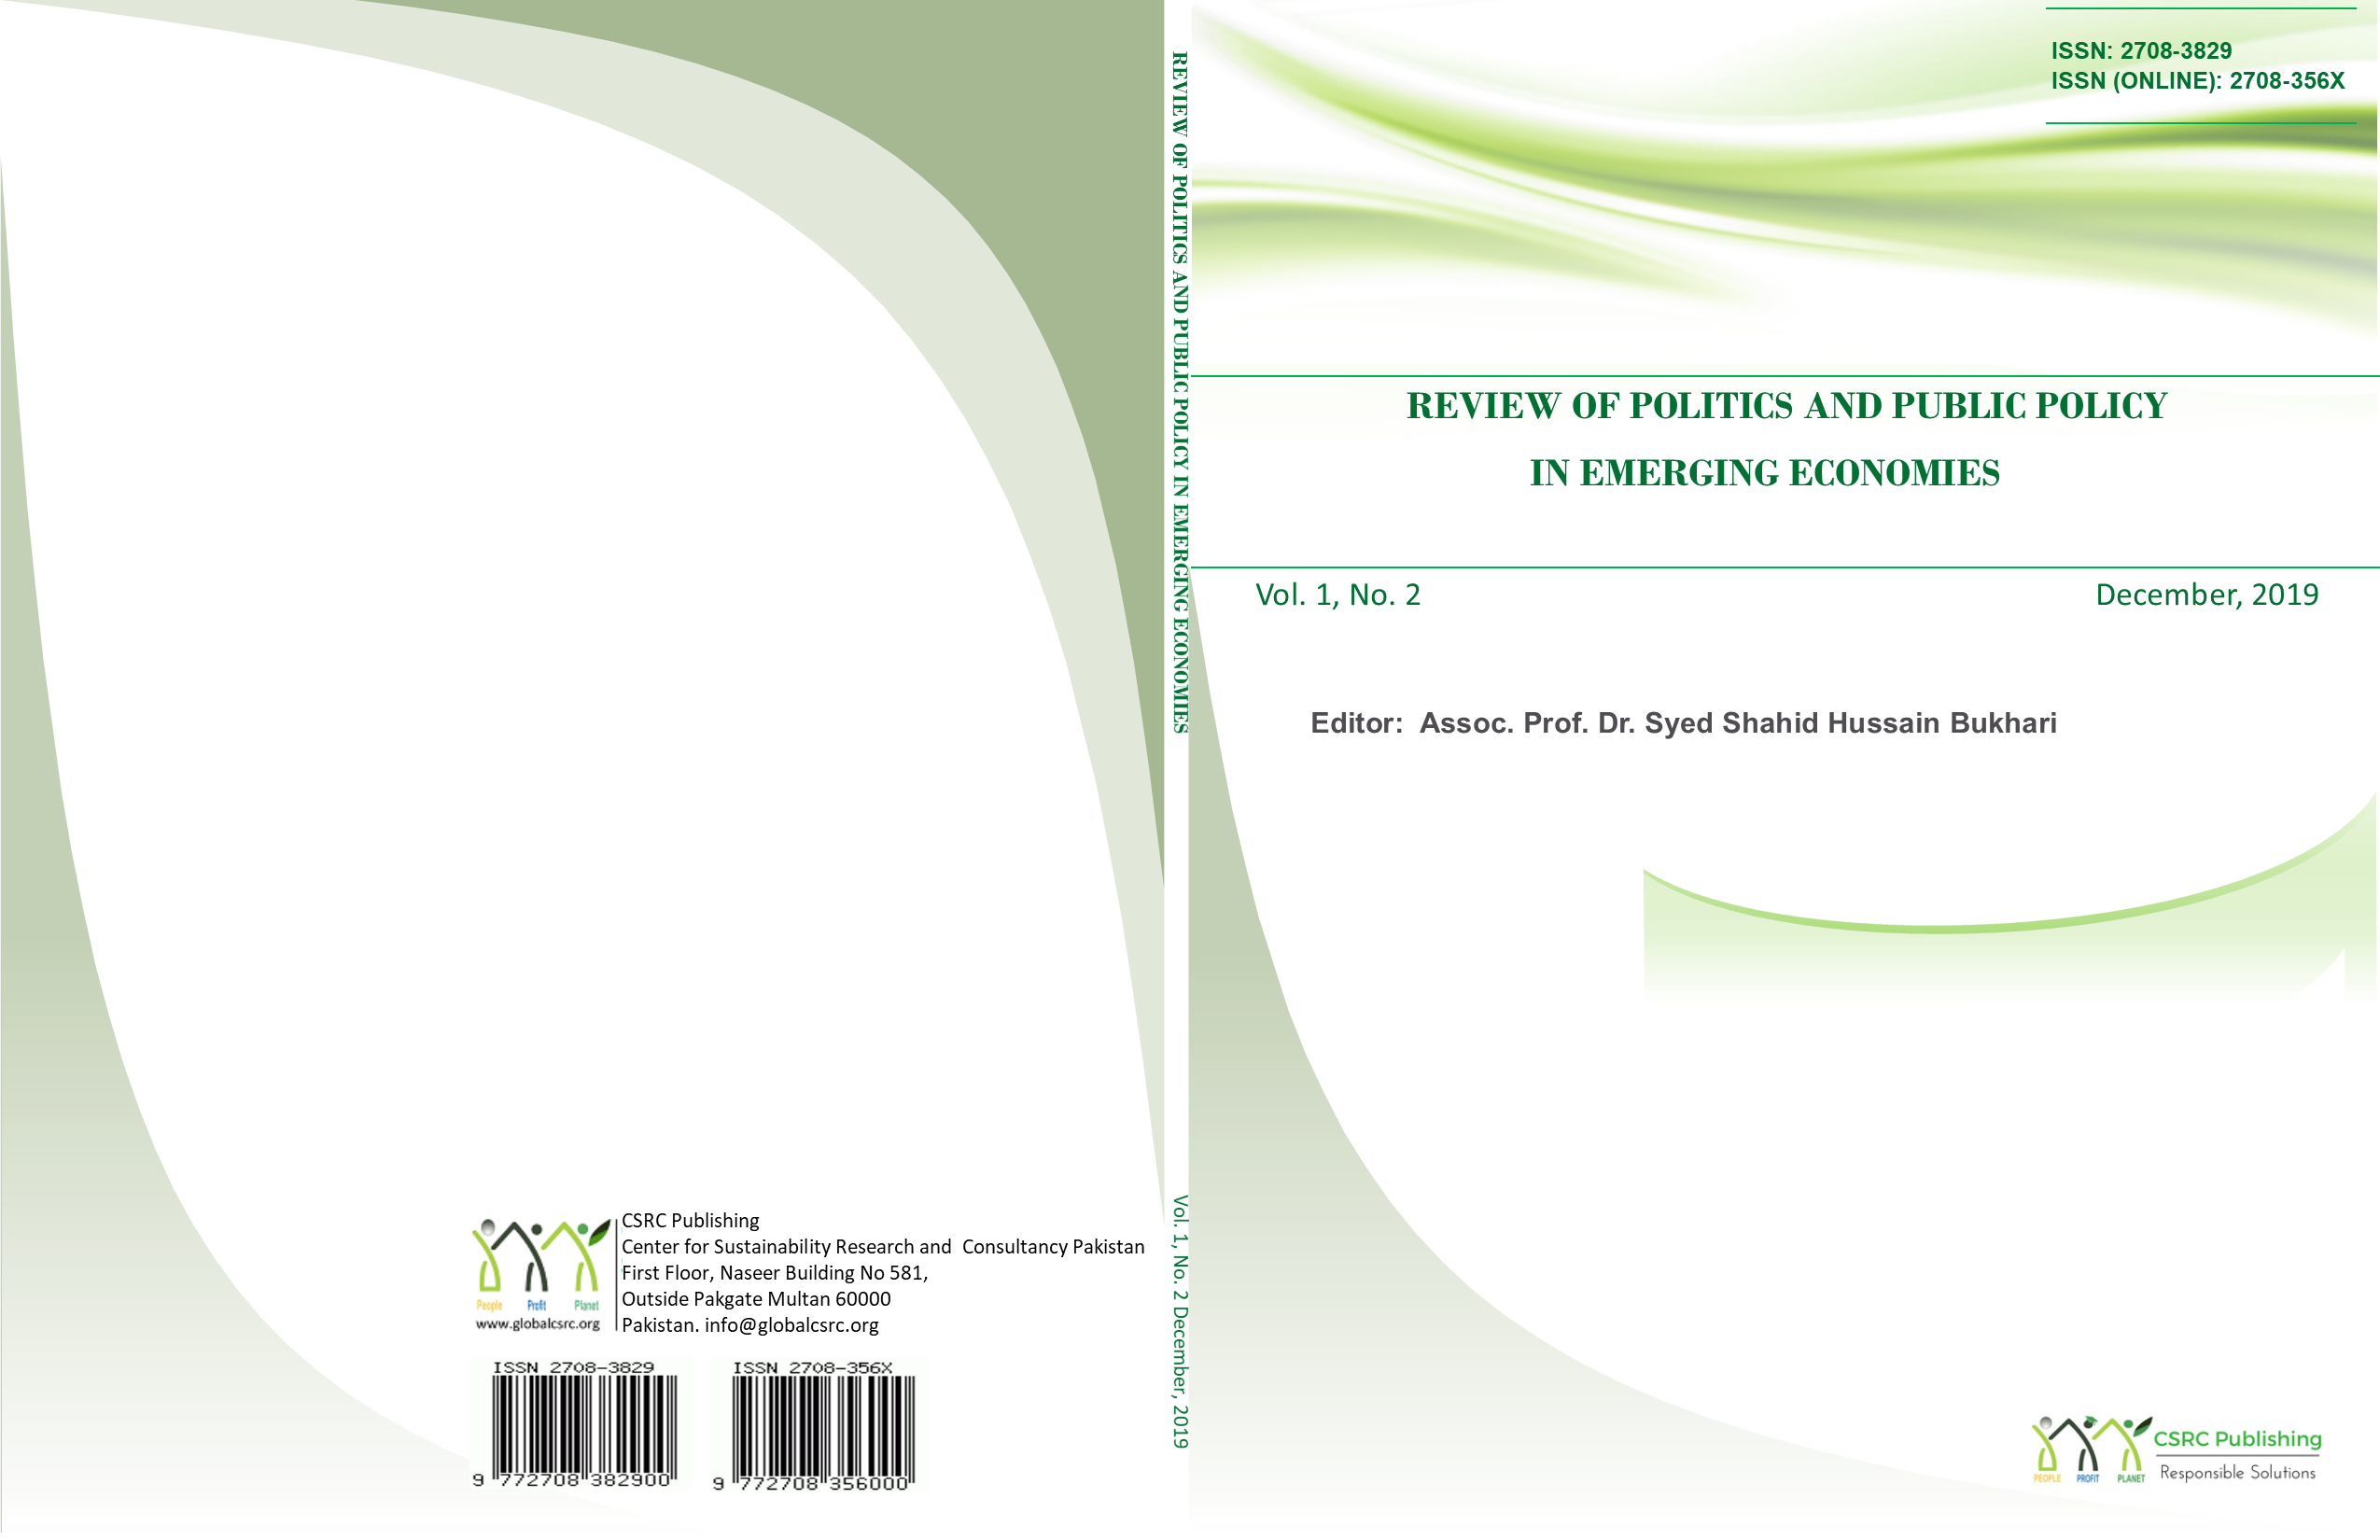 Review of Politics and Public Policy in Emerging Economies (ROPE)